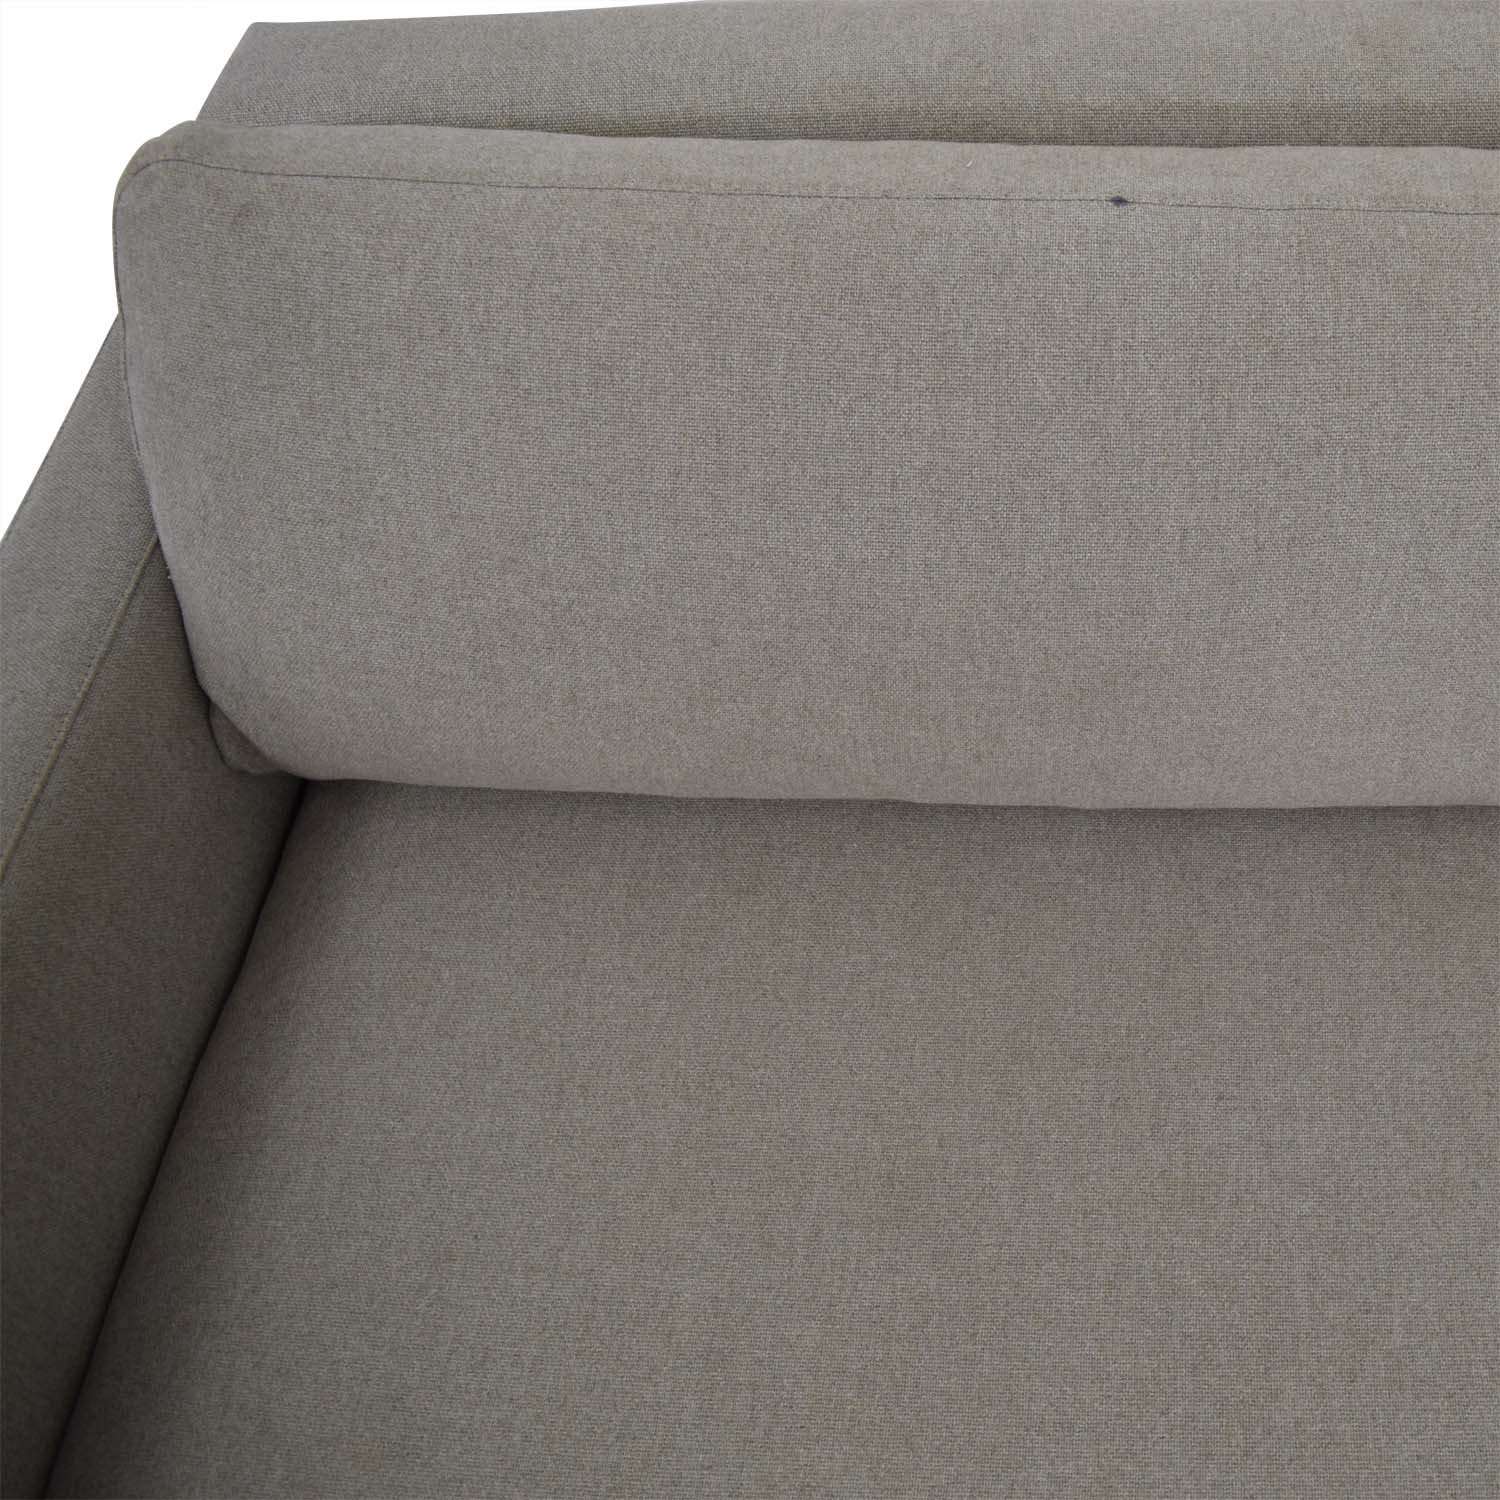 Room & Board Room & Board Beige Hess Two-Cushion Sofa second hand